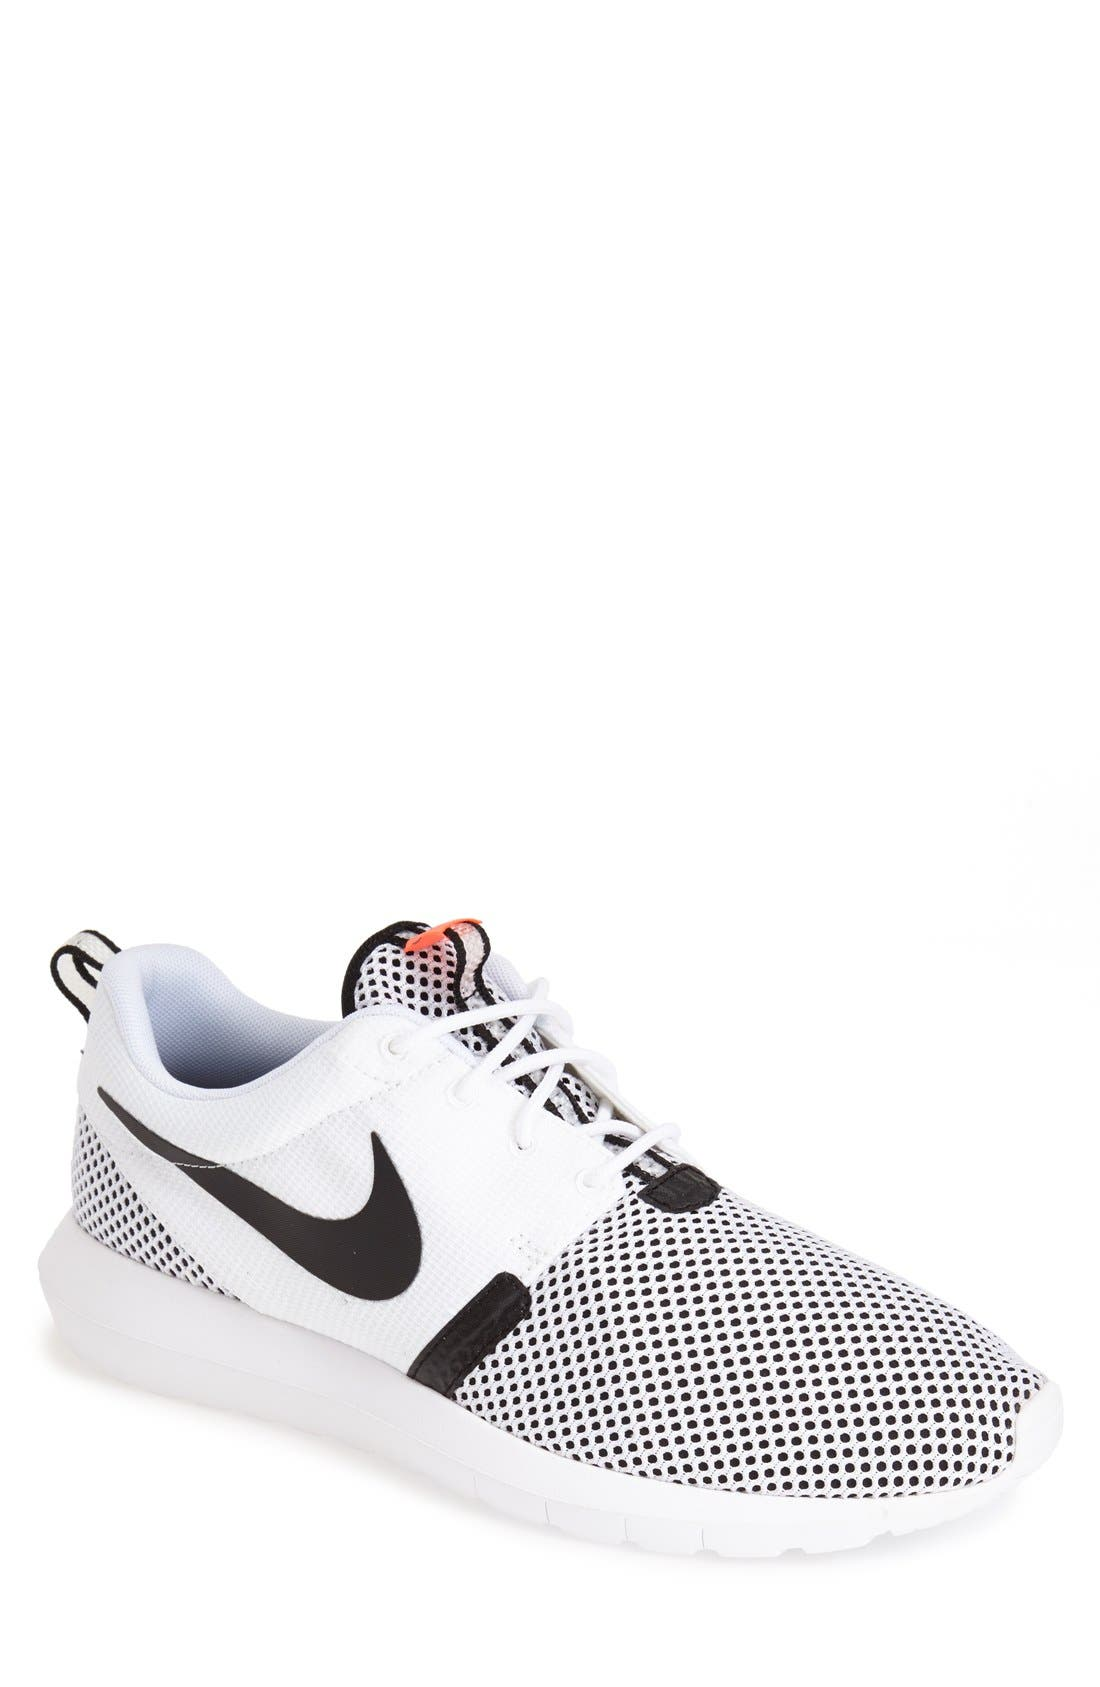 Main Image - Nike 'Roshe Run NM Breeze' Sneaker (Men)